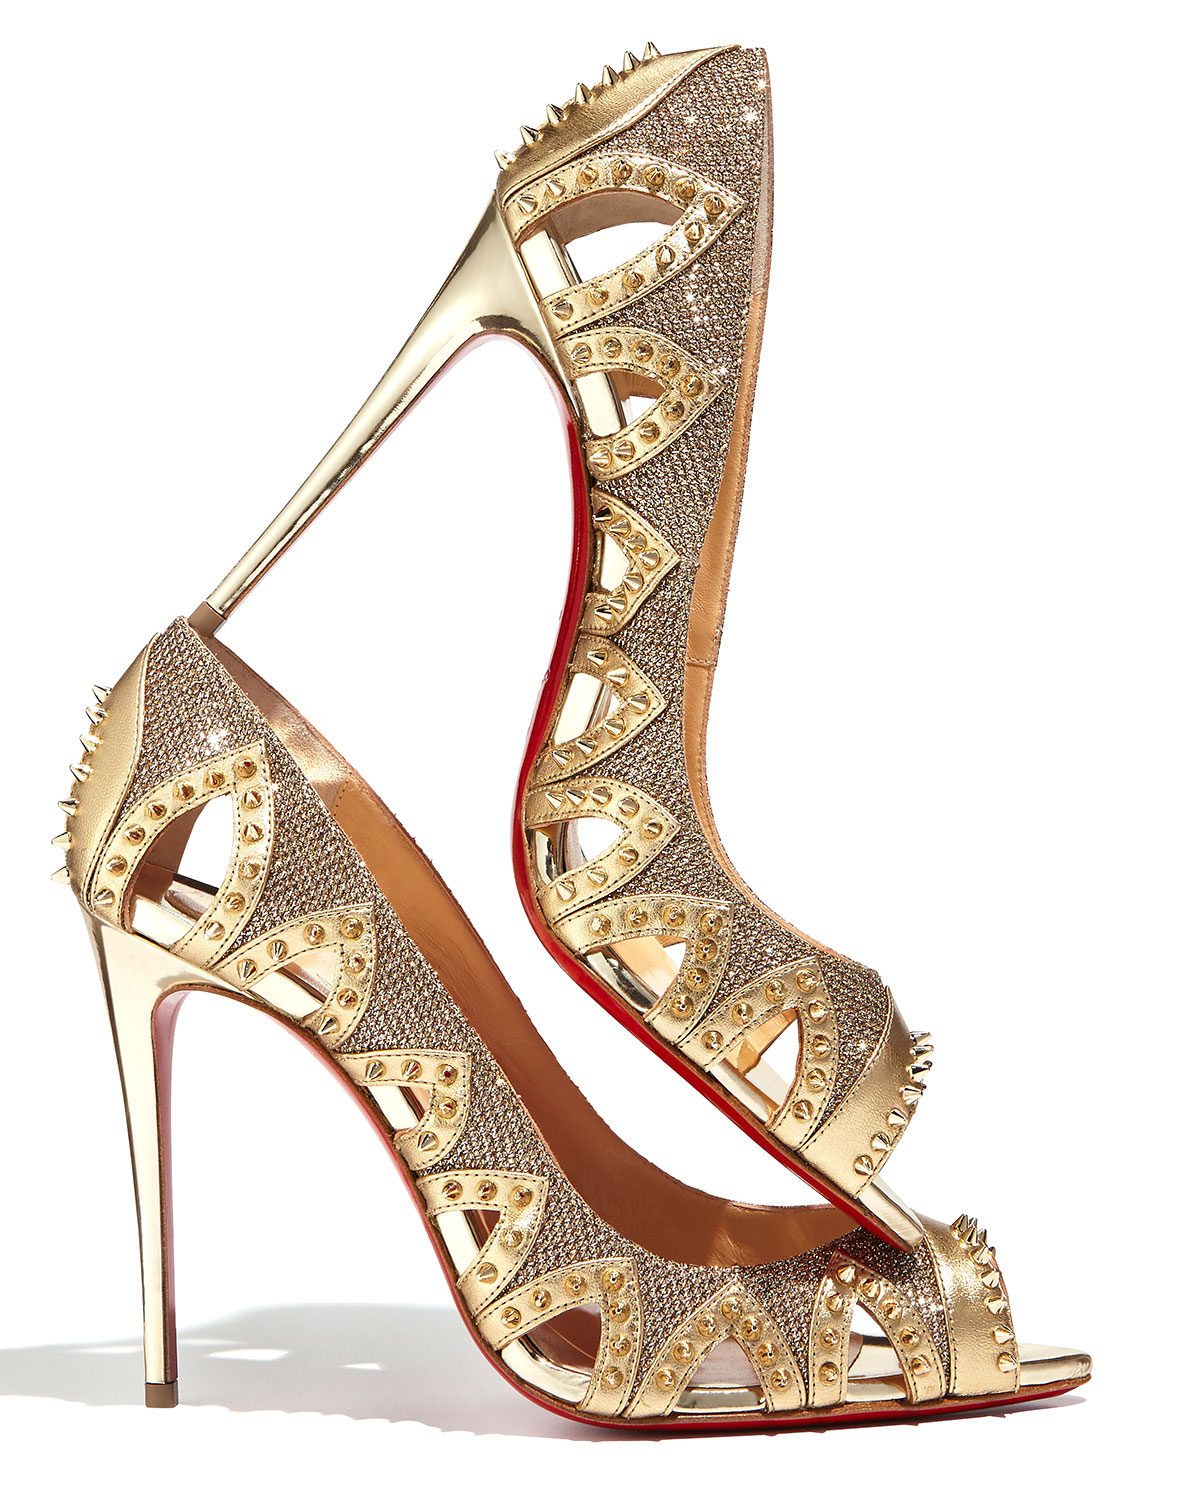 ff18846c289 Circus City Spiked Red Sole Pump, Gold